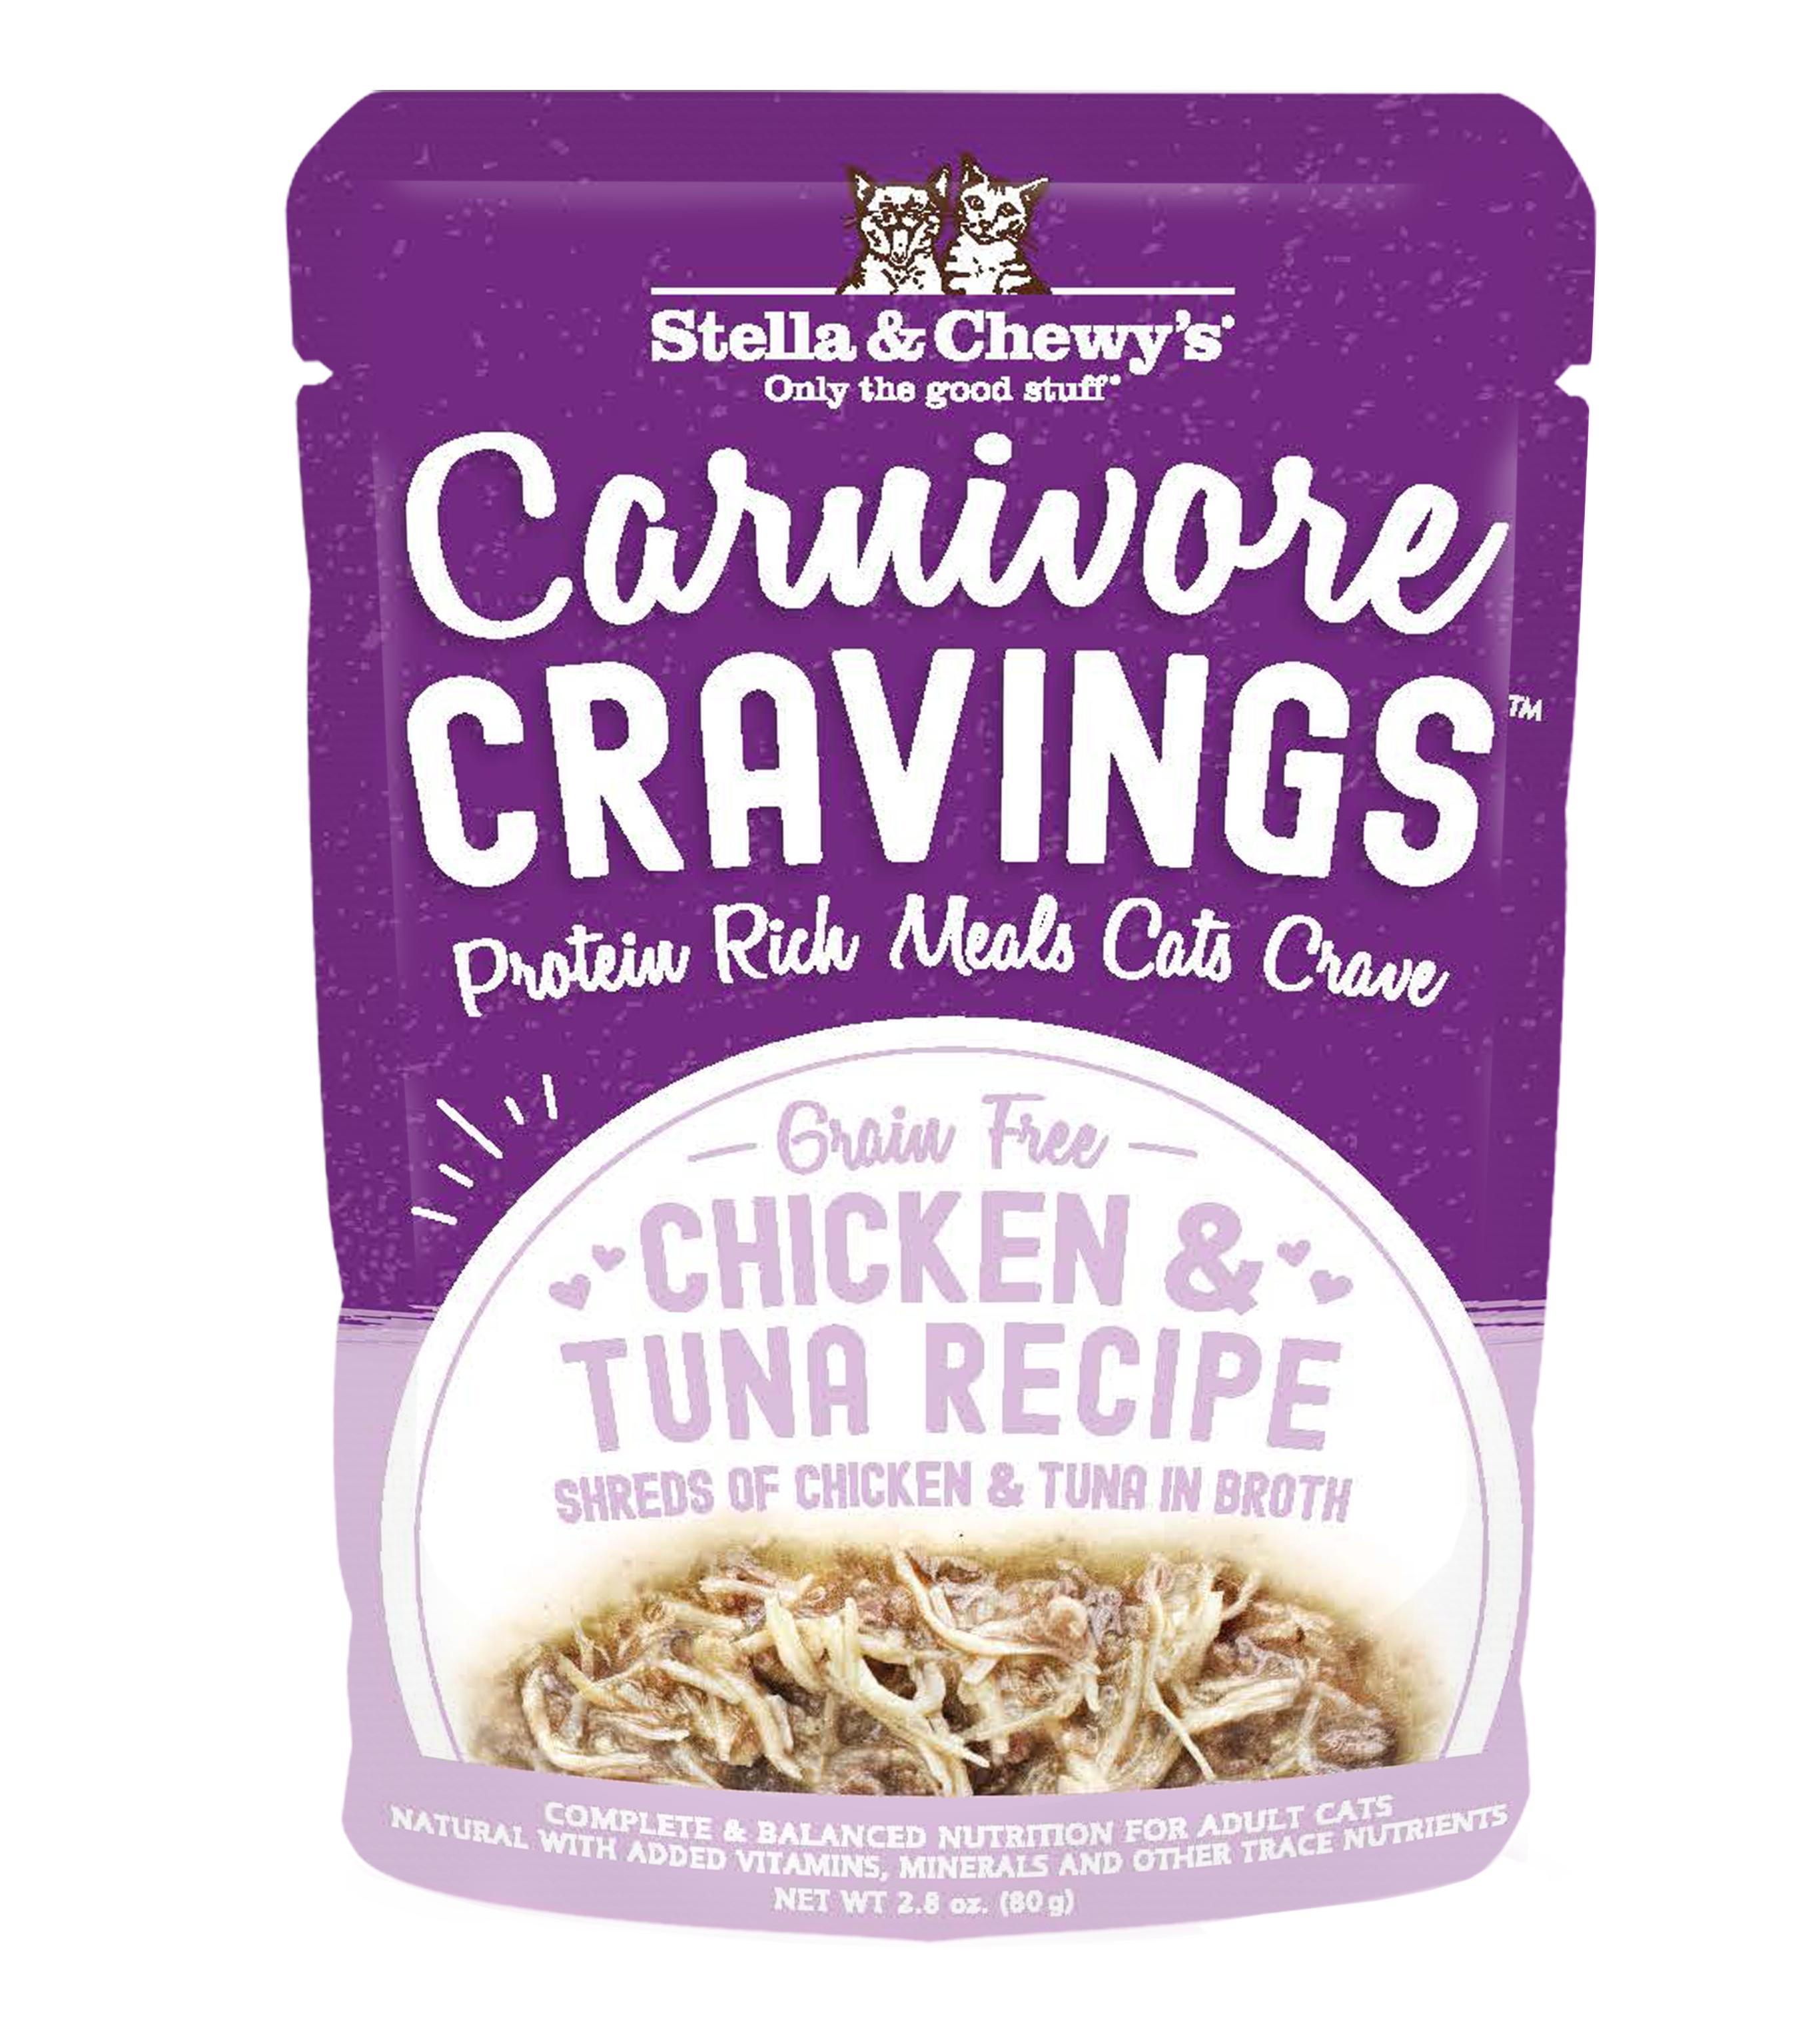 Stella & Chewy's Carnivore Cravings Chicken & Tuna Wet Cat Food, 2.8-oz pouch